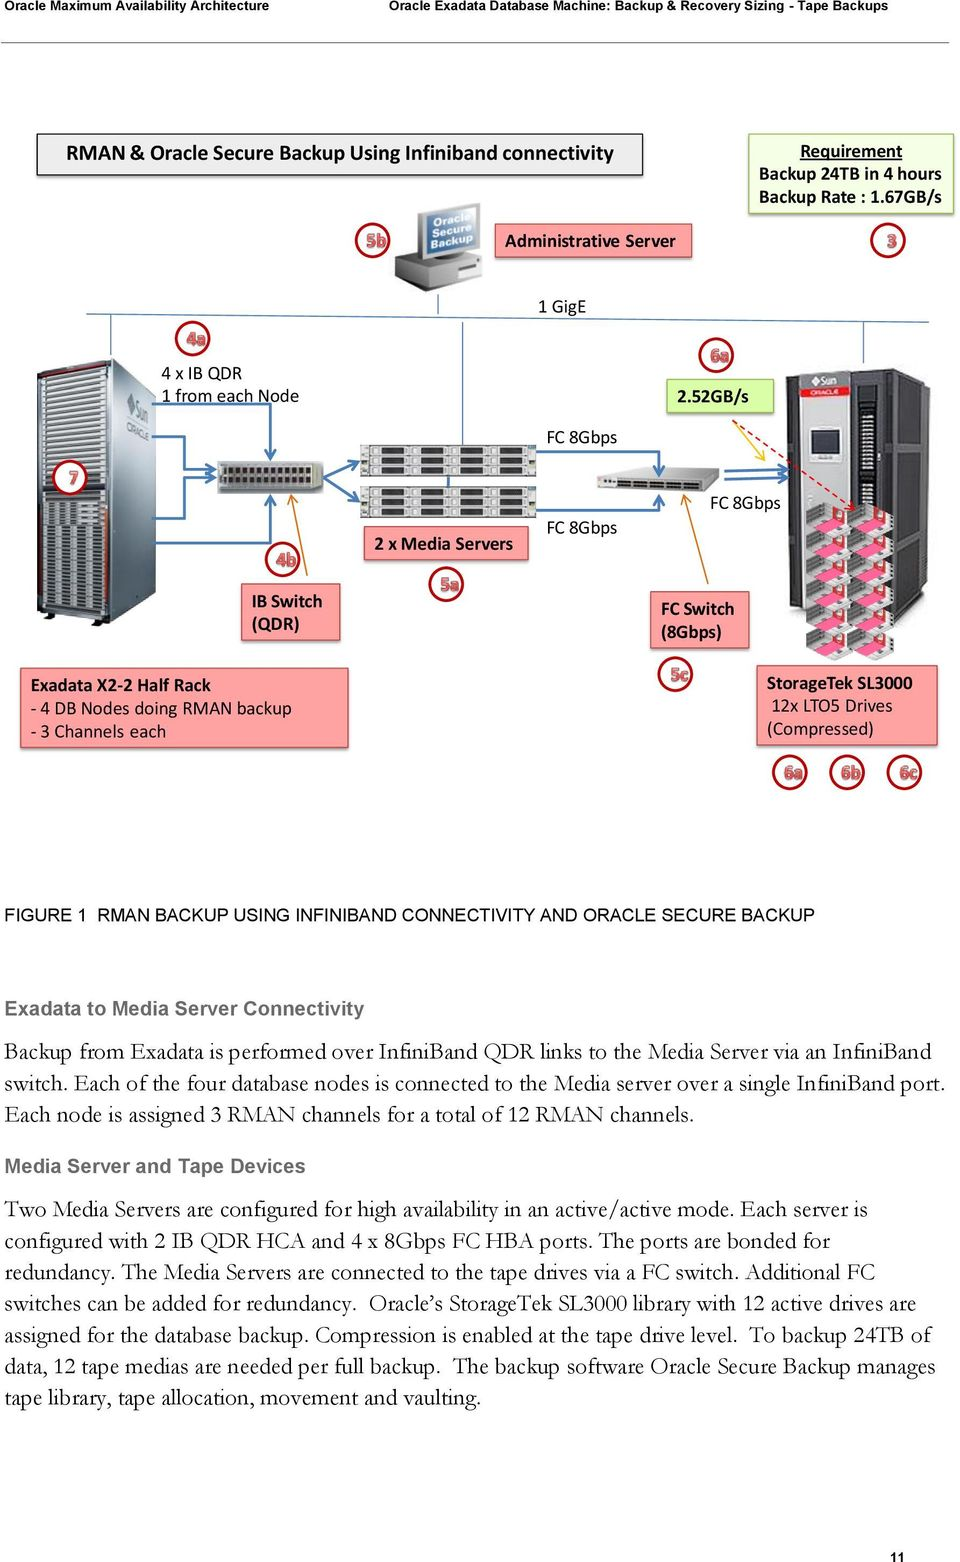 (Compressed) FIGURE 1 RMAN BACKUP USING INFINIBAND CONNECTIVITY AND ORACLE SECURE BACKUP Exadata to Media Server Connectivity Backup from Exadata is performed over InfiniBand QDR links to the Media